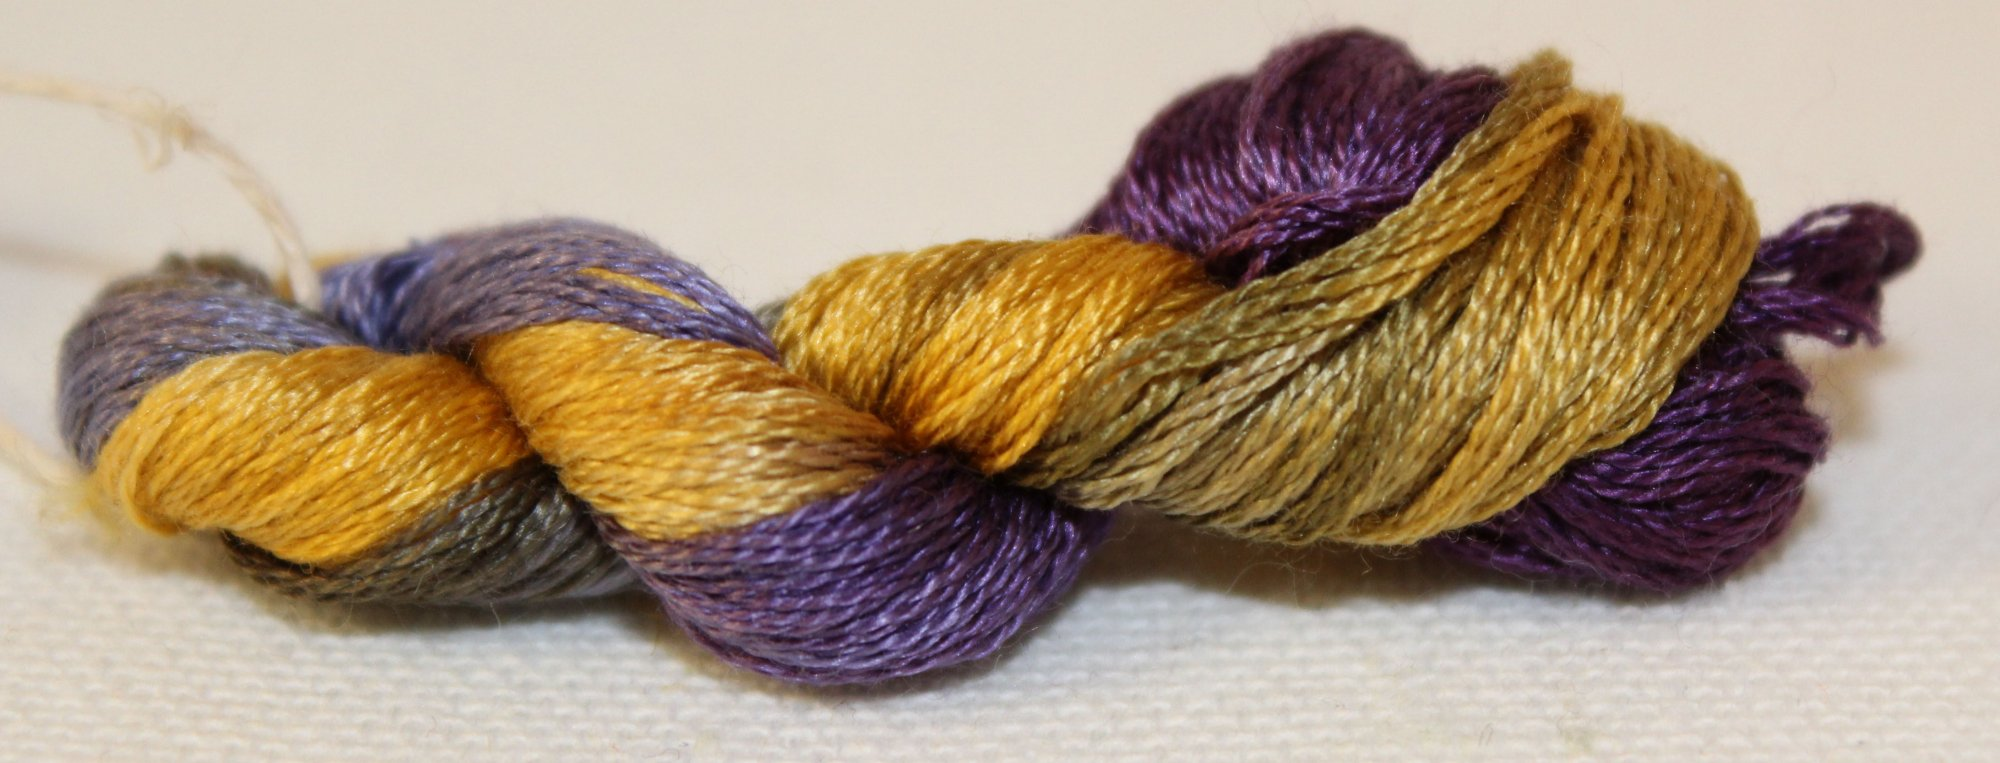 Morning Glory- Hand-Dyed Embroidery Floss